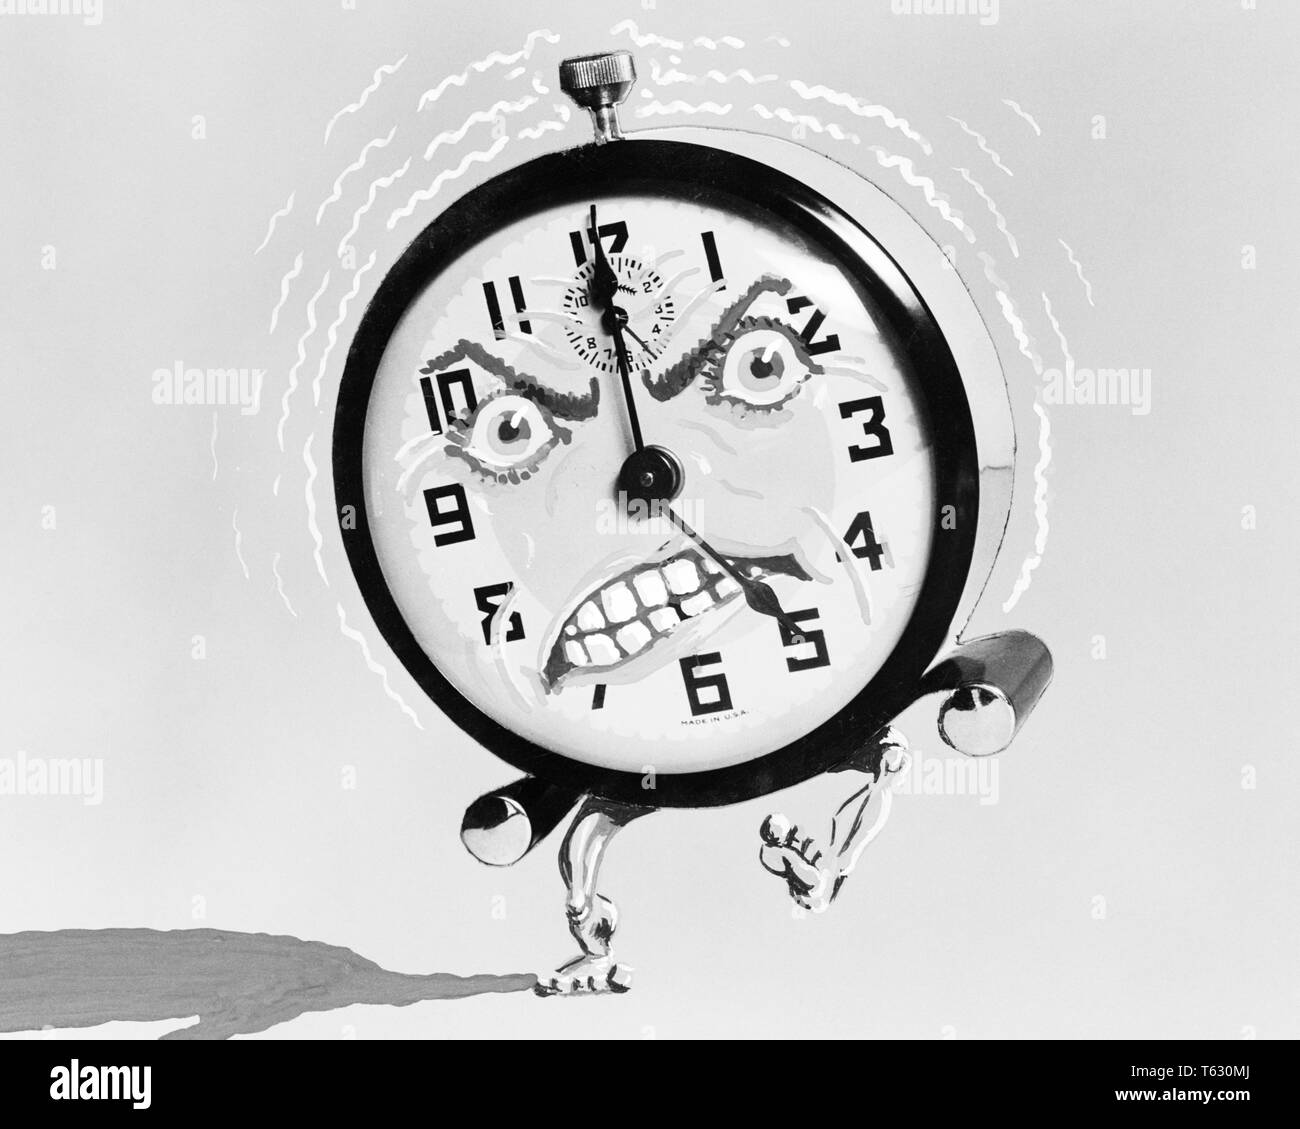 1930s 1940s ILLUSTRATION OF ALARM CLOCK WITH ANGRY FACE KICKING AND RINGING AT 5 AM IN THE MORNING - s7989 HAR001 HARS ANNOYING AWAKEN CONCEPTUAL HUMANIZED STILL LIFE ALERT AM DAWN NOISY ANGRILY GET UP O'CLOCK SYMBOLIC CONCEPTS ANTHROPOMORPHIC BLACK AND WHITE HAR001 OLD FASHIONED REPRESENTATION - Stock Image